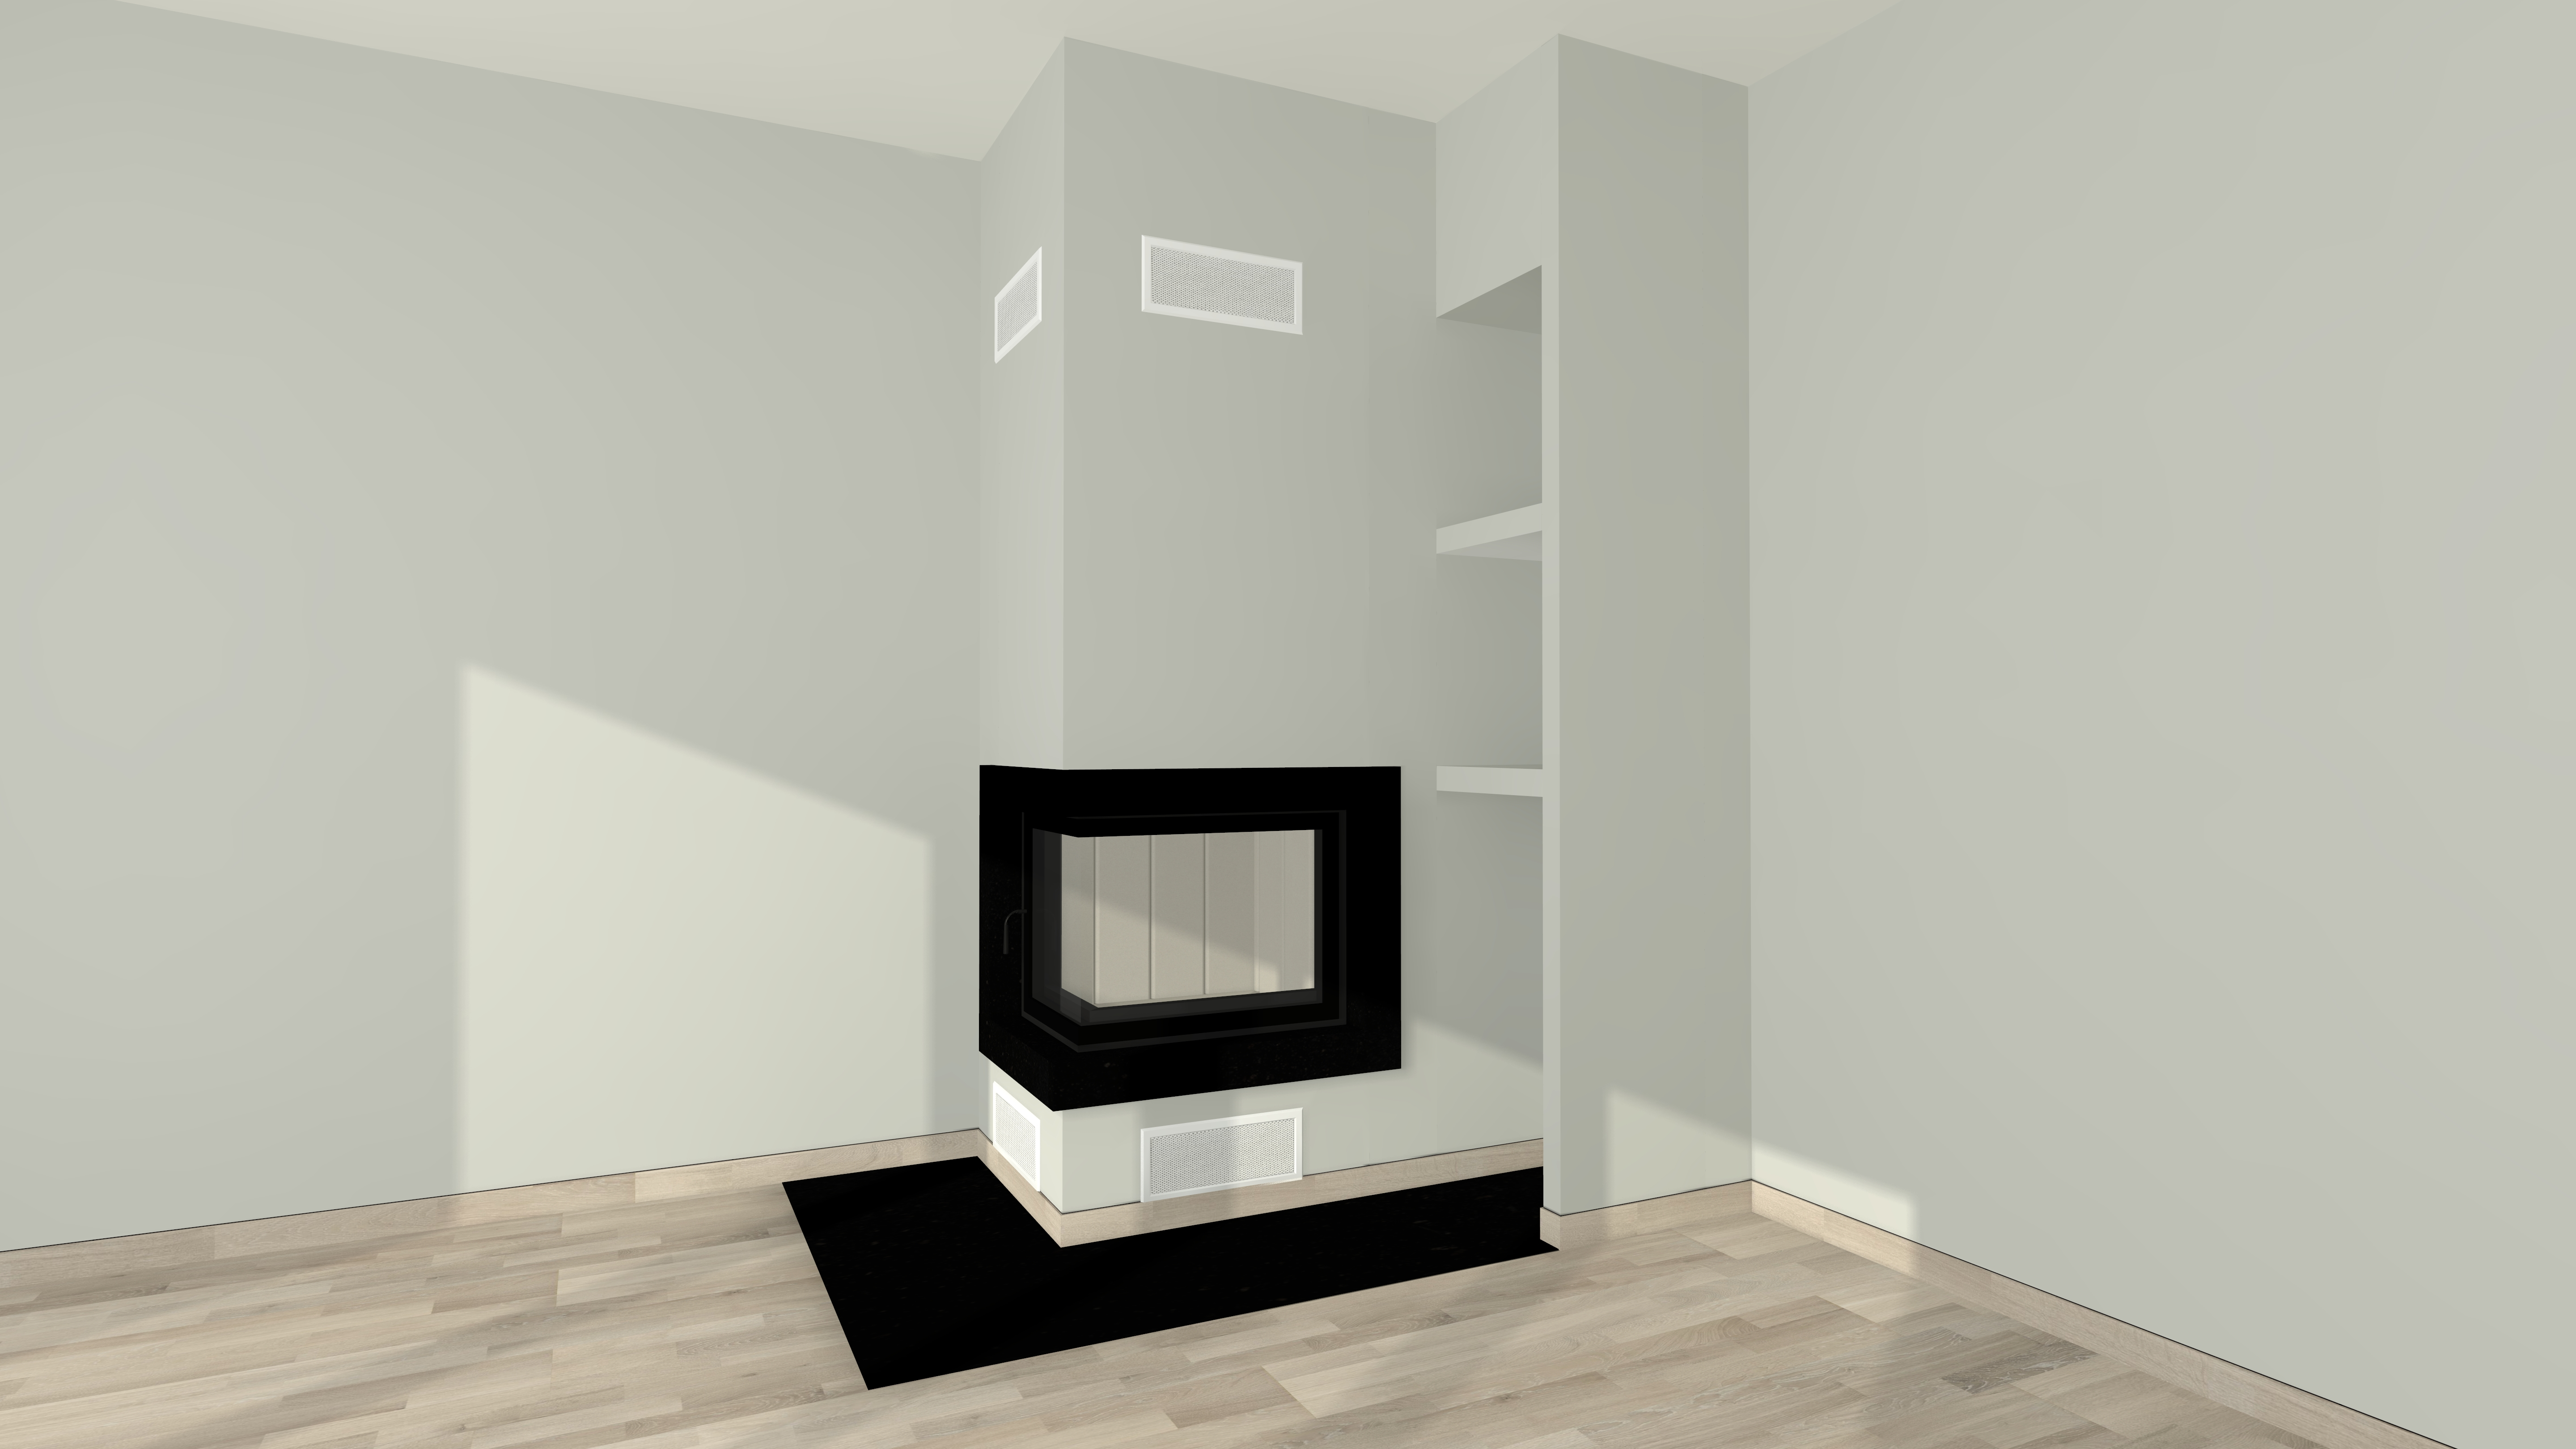 eckkamin modern a 09 4 mit spartherm mit montage www. Black Bedroom Furniture Sets. Home Design Ideas